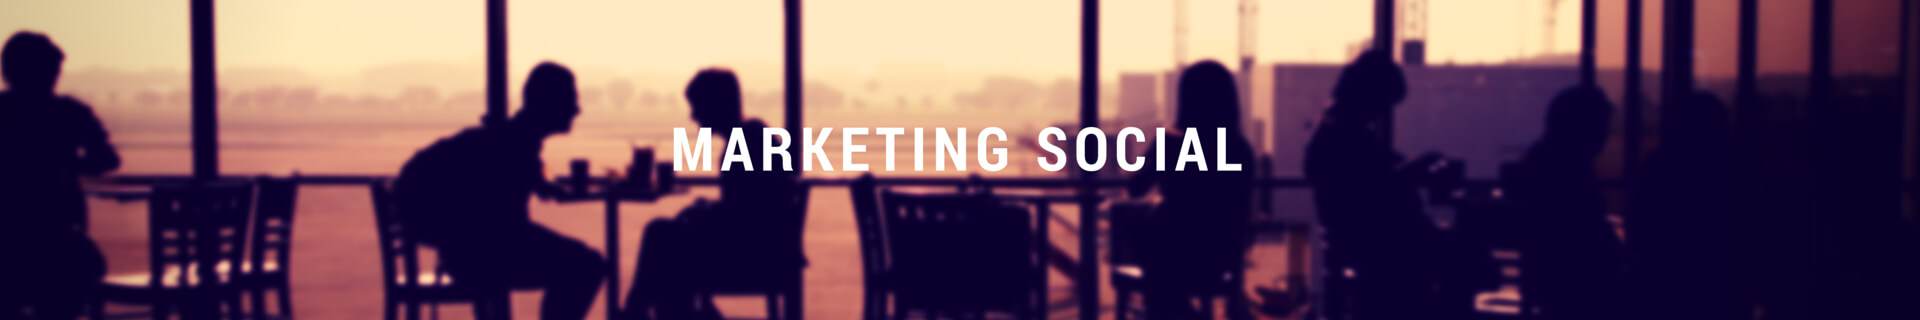 slider-marketing-social